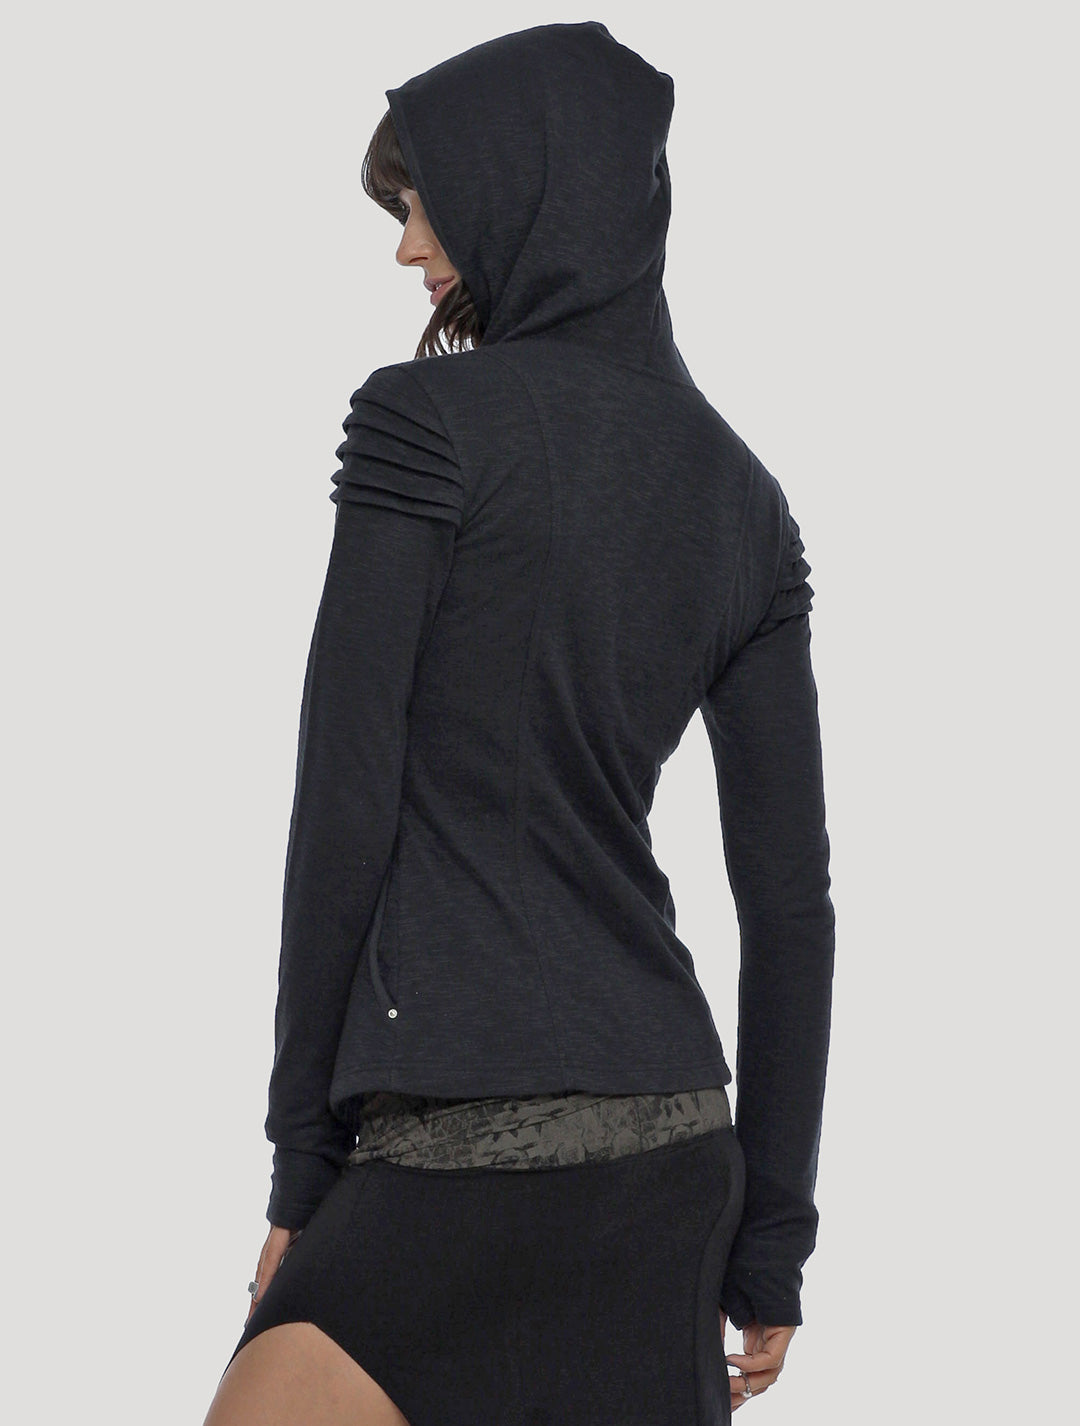 Dogon Light Hoodie Jacket